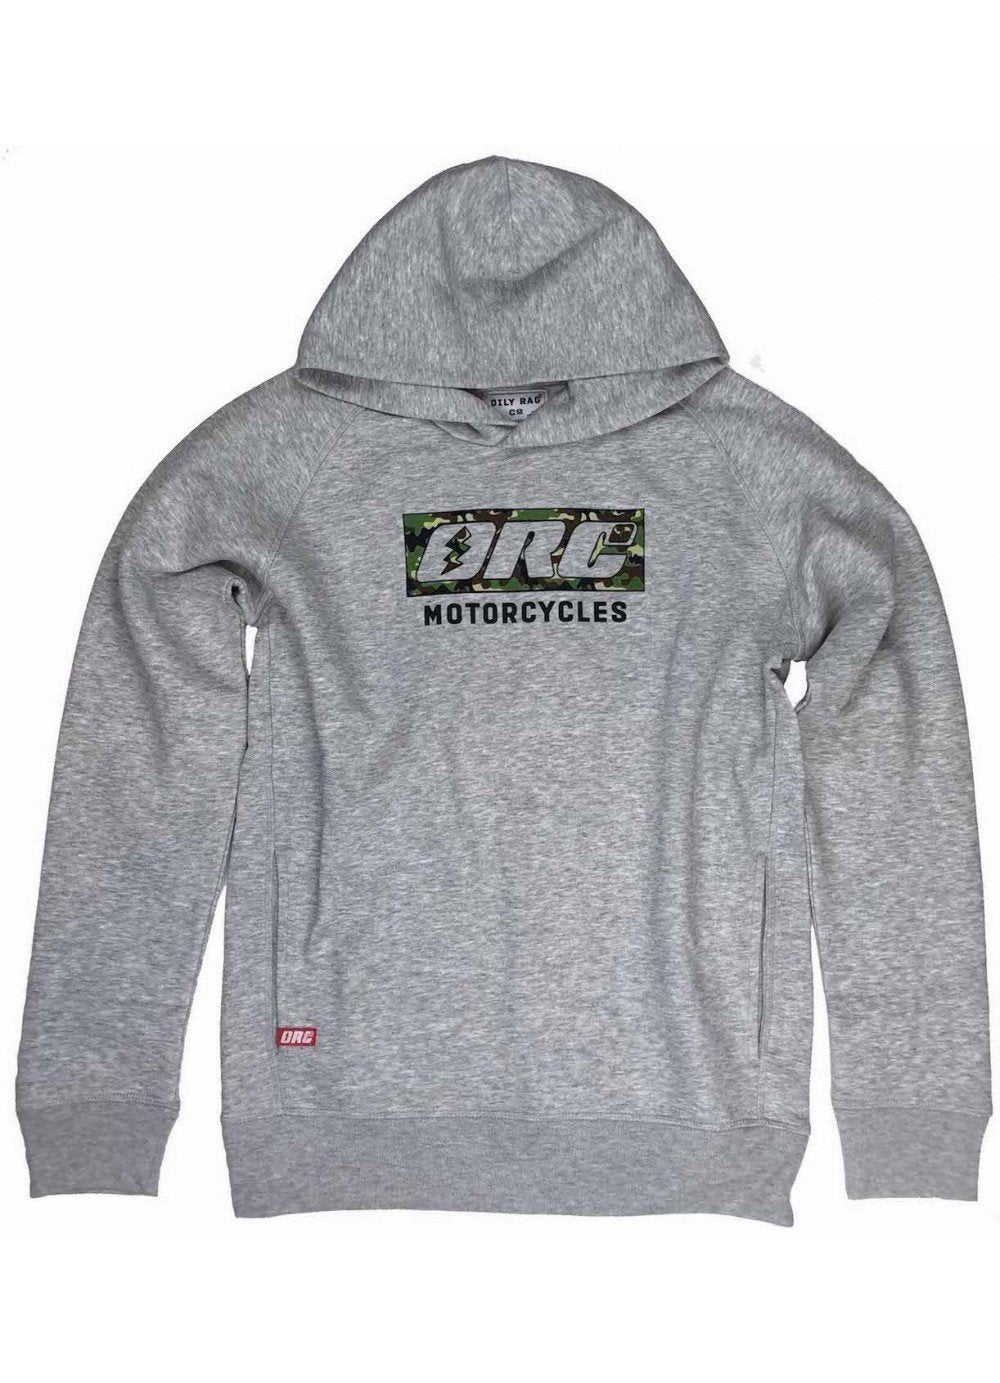 Oily Rag Clothing - Oily Rag Clothing Unisex ORC Motorräder schwarz Label Hoodie - Hoodies | Sweatshirts | Wind Stoppers - Salt Flats Clothing